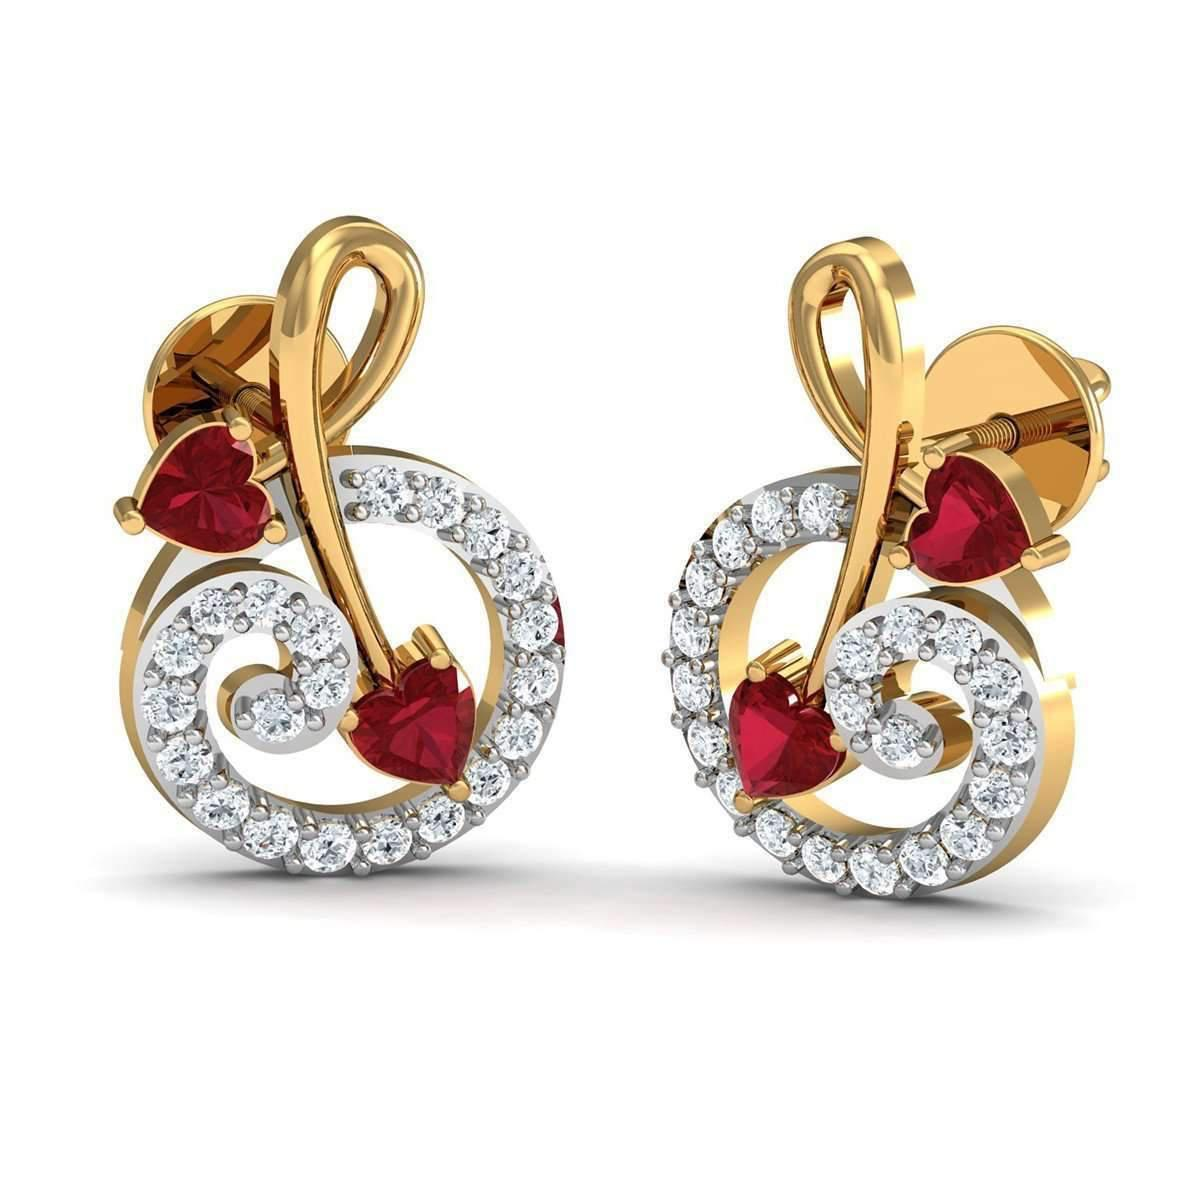 Diamoire Jewels Heart Shaped Ruby and Diamonds Pave 14kt Yellow Gold Earrings